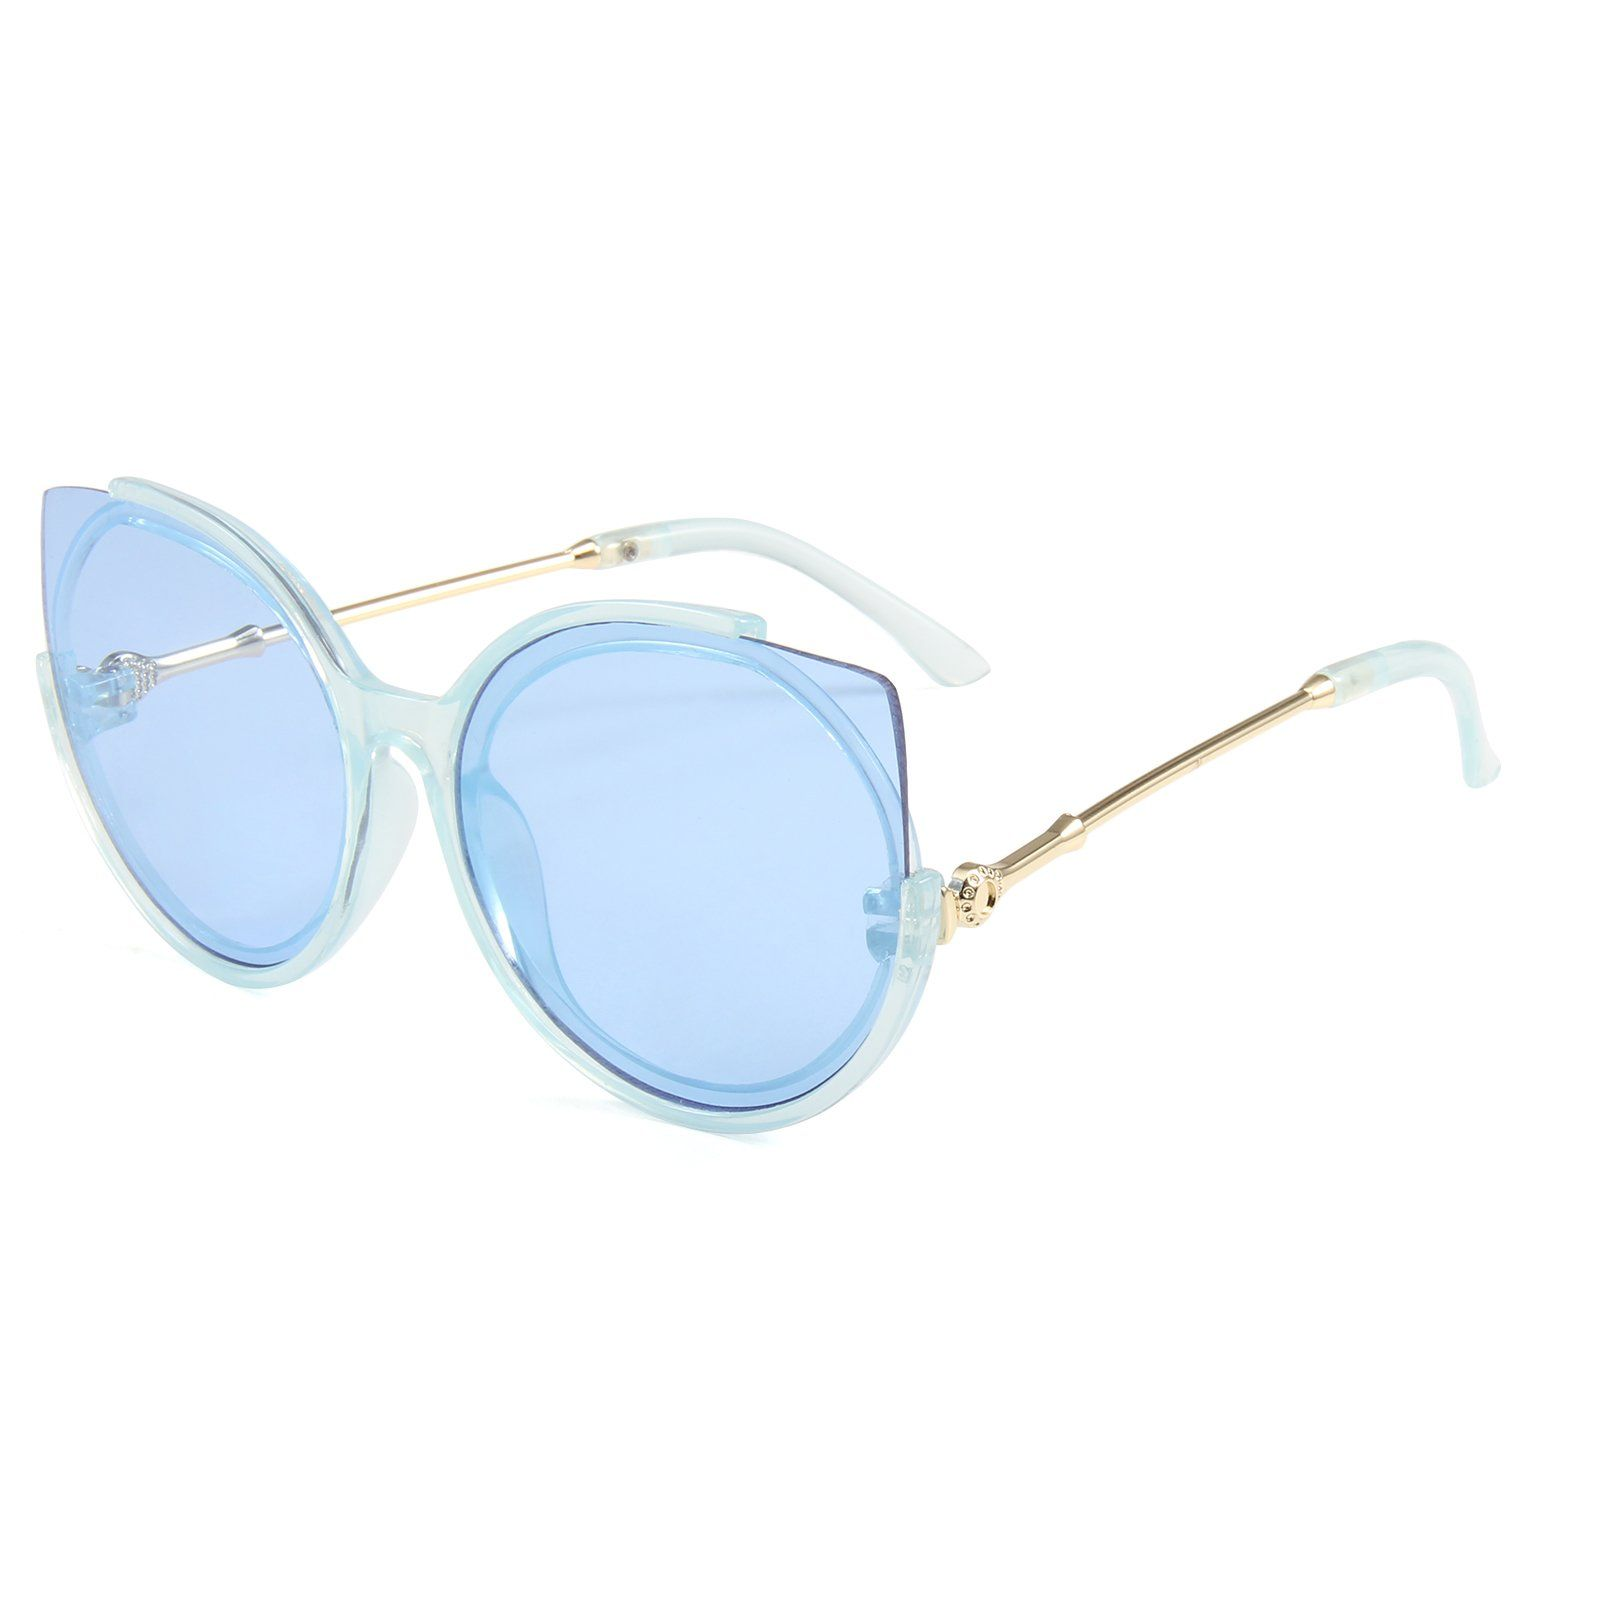 Kitty Sunglasses (White)